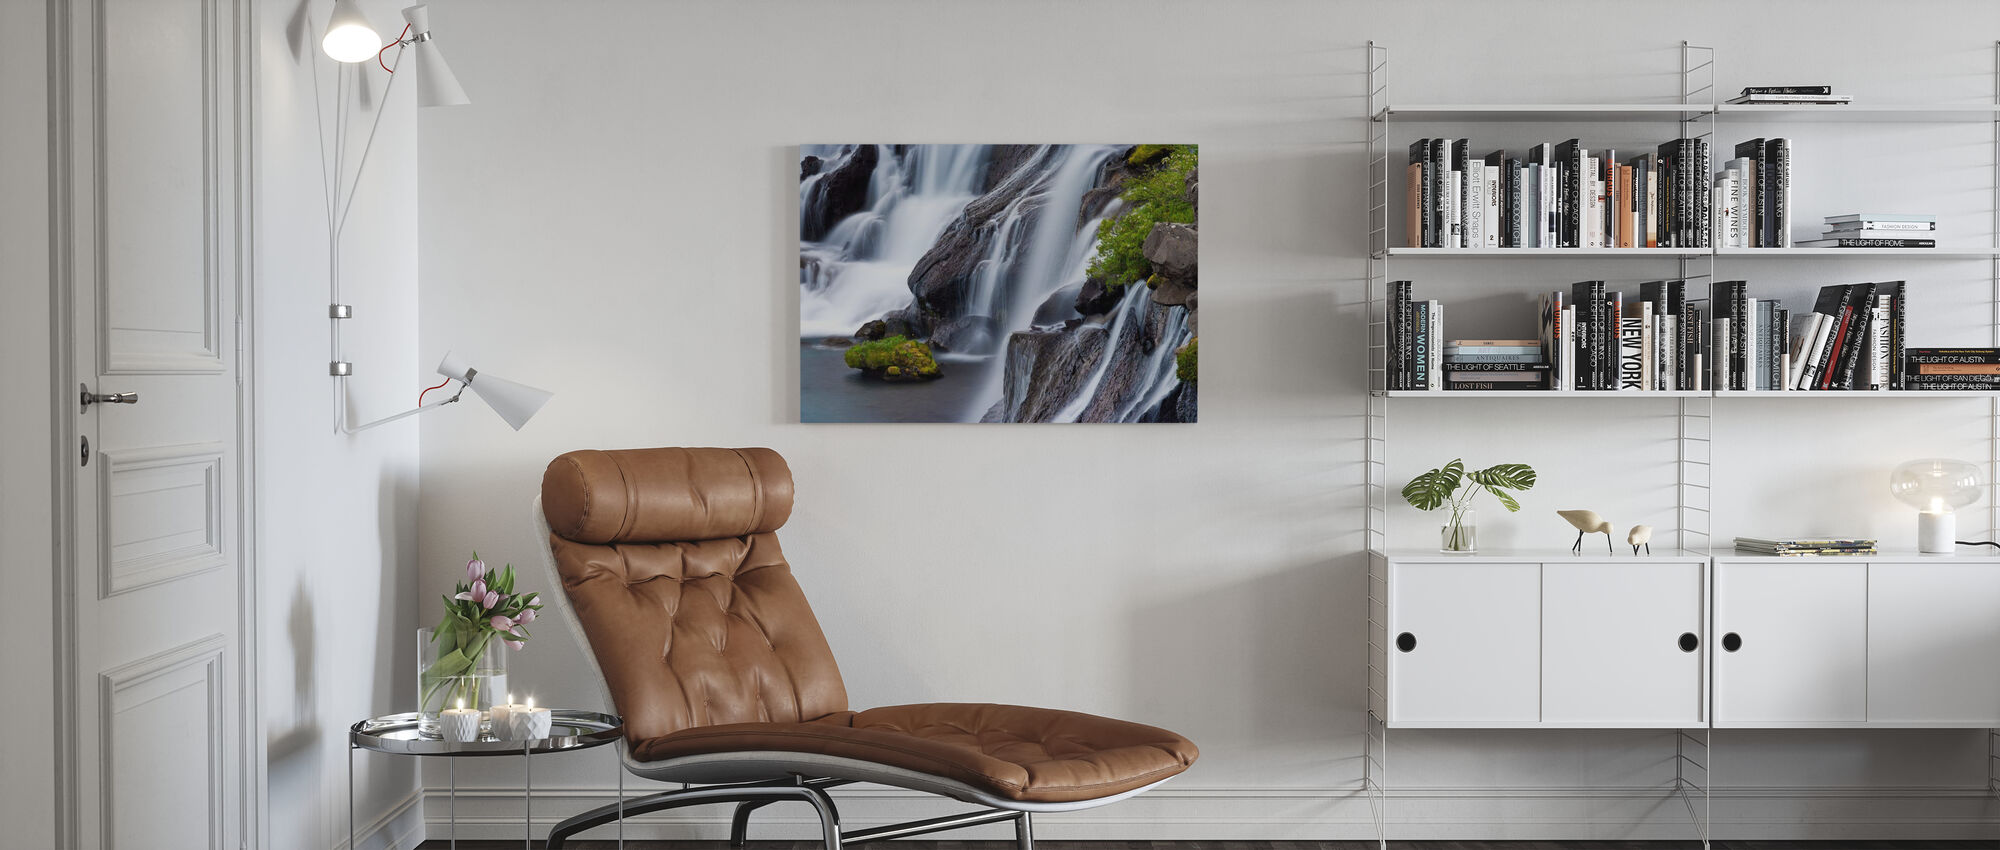 Hraunfossar Waterfalls in Iceland - Canvas print - Living Room